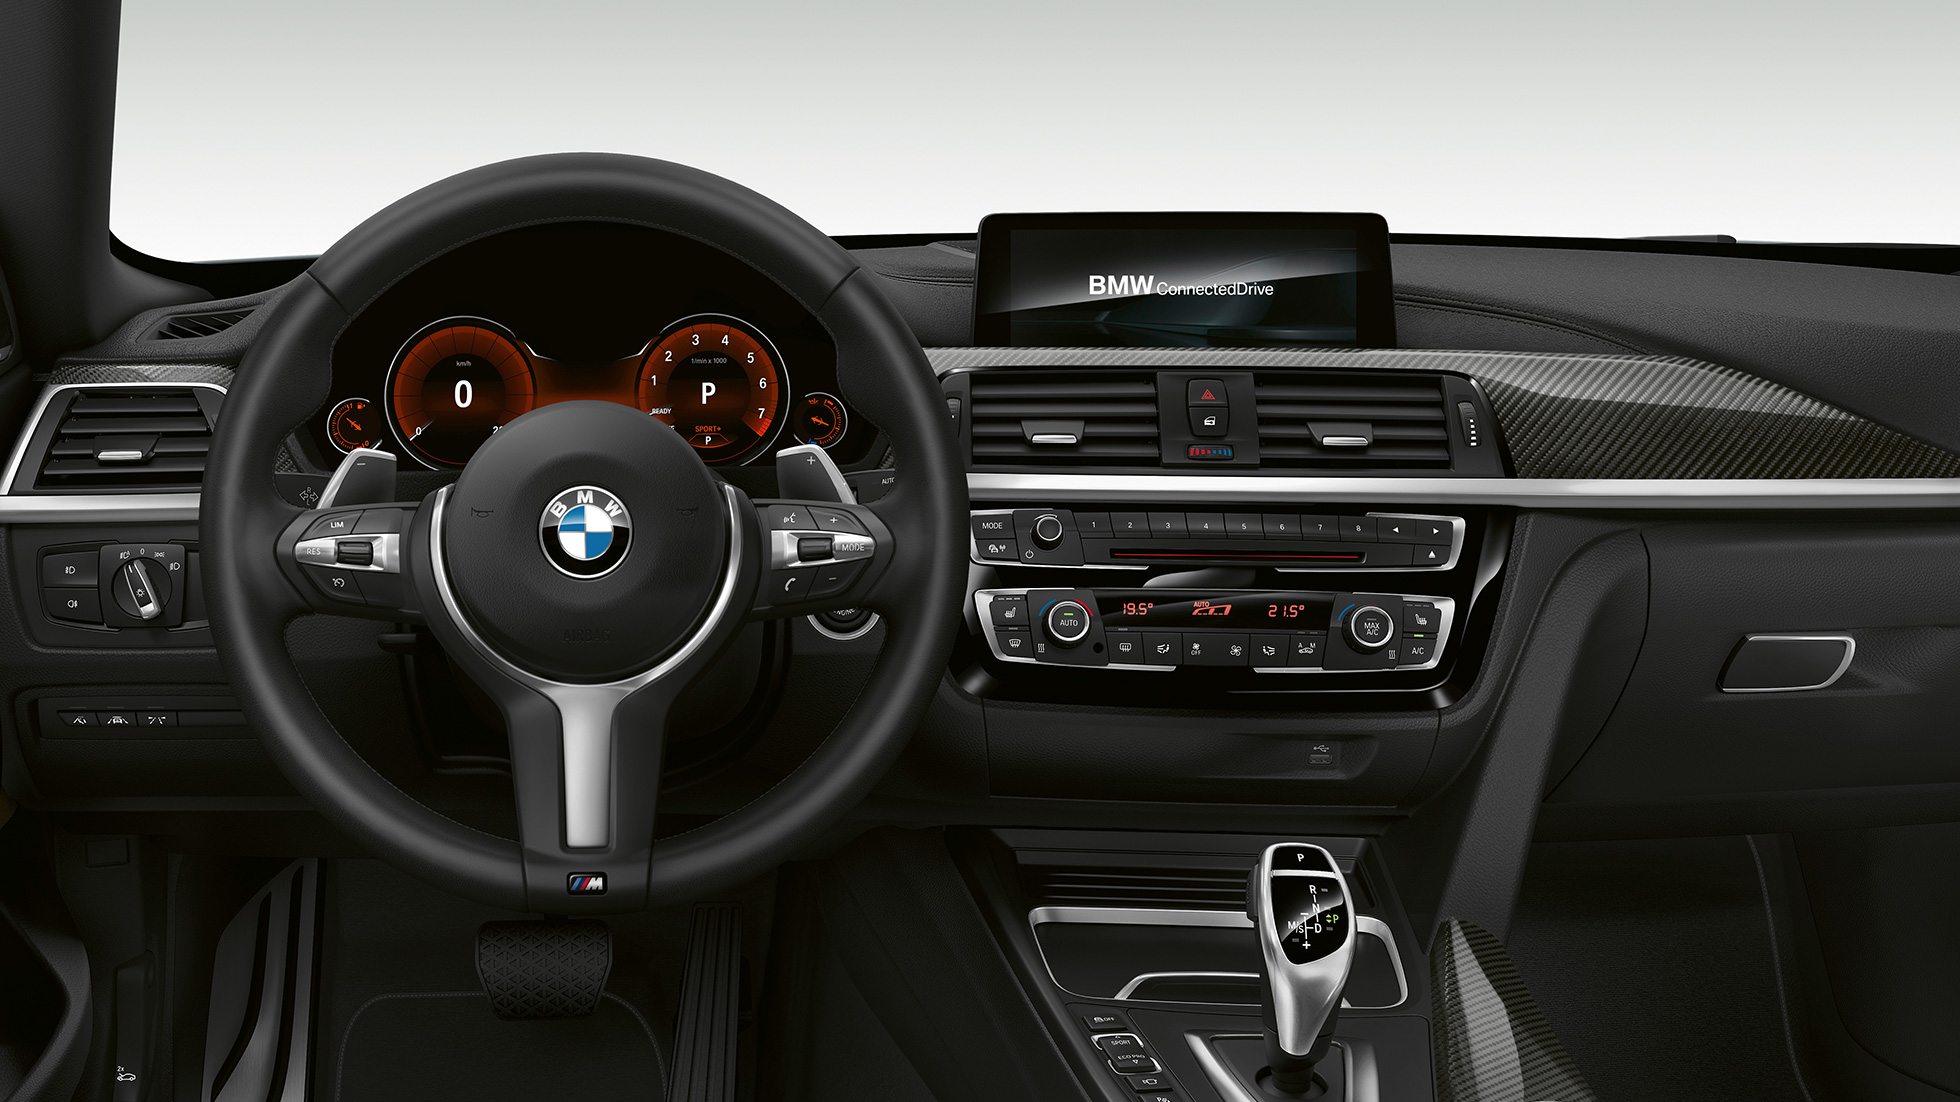 BMW 4 Série Gran Coupé, Model M Sport cockpit